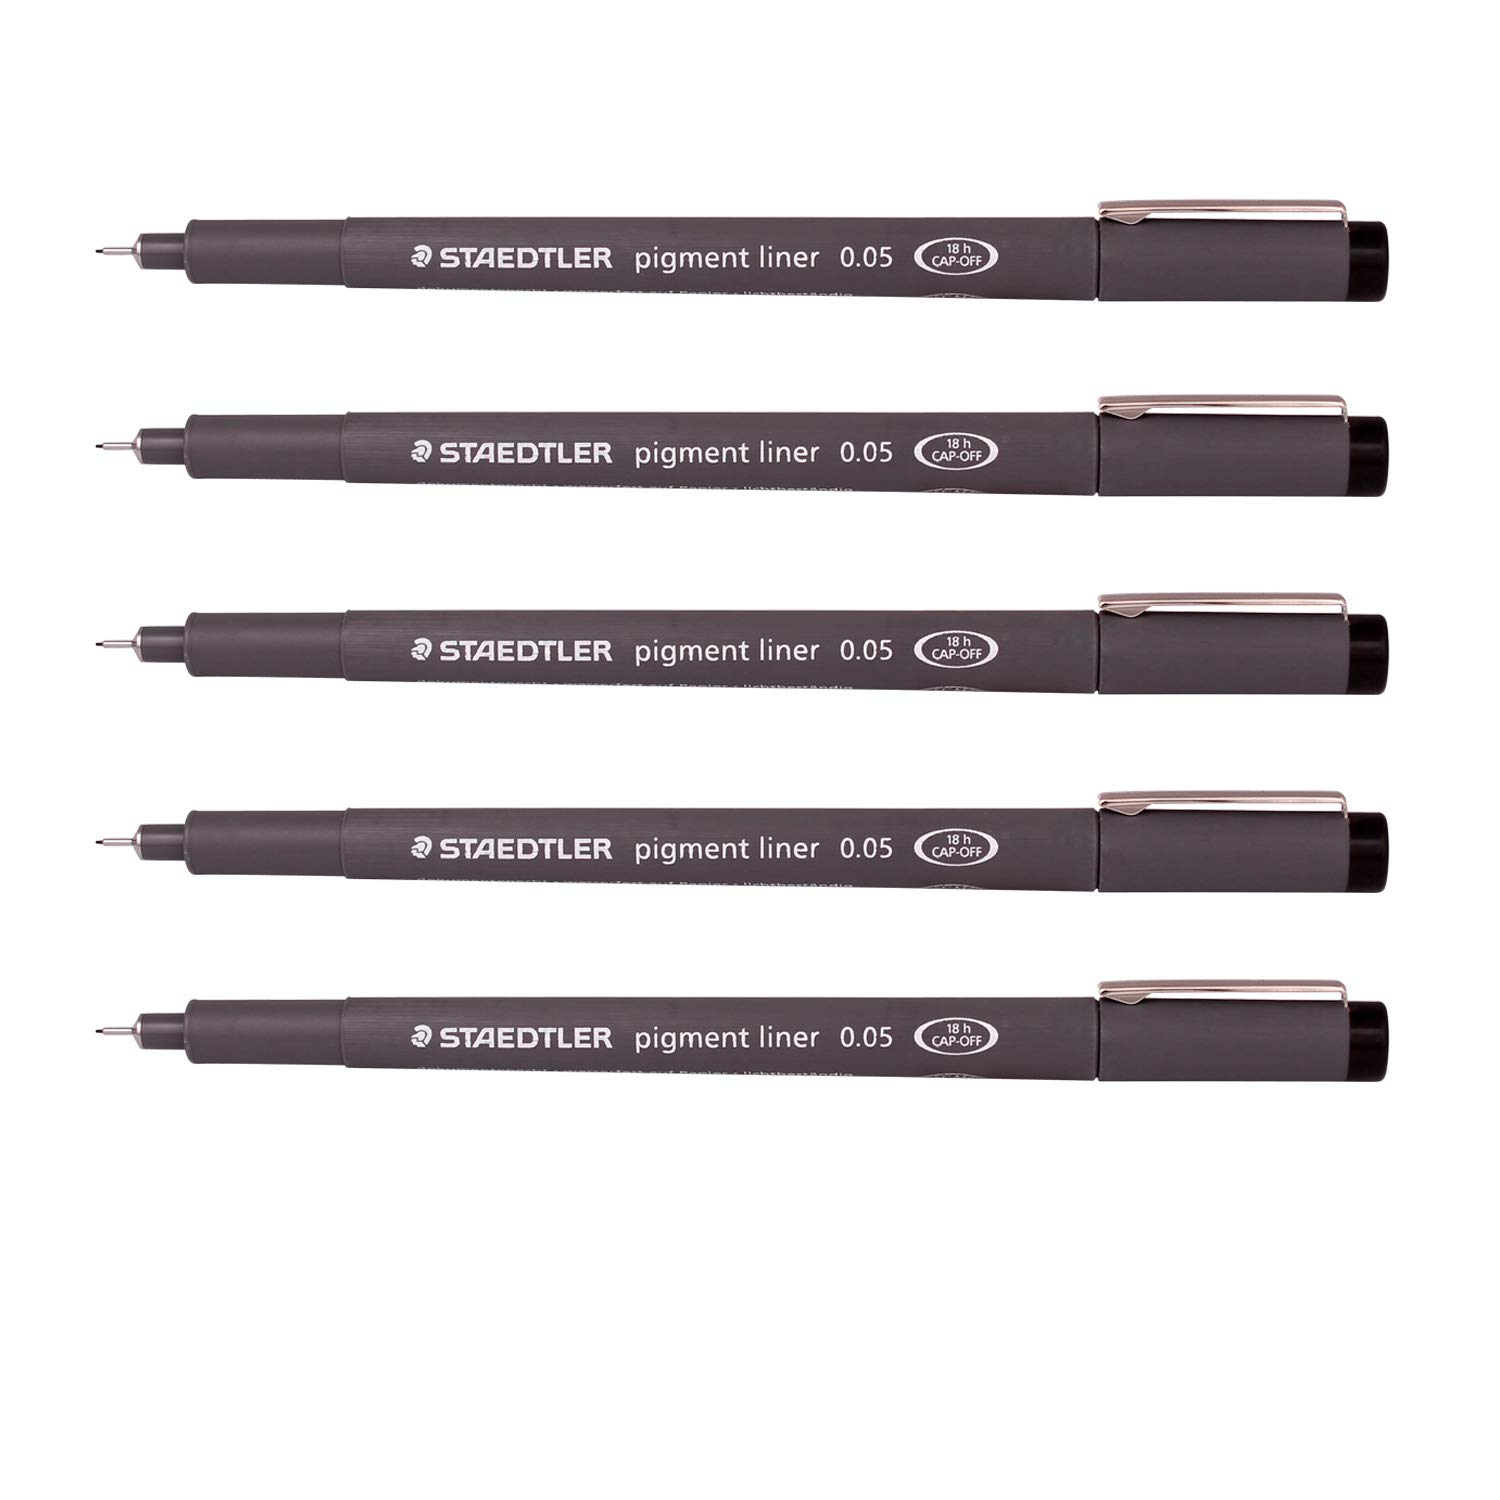 Staedtler 0.05 mm Pigment Liner Fineliner Sketching Drawing Drafting Pens by Staedtler